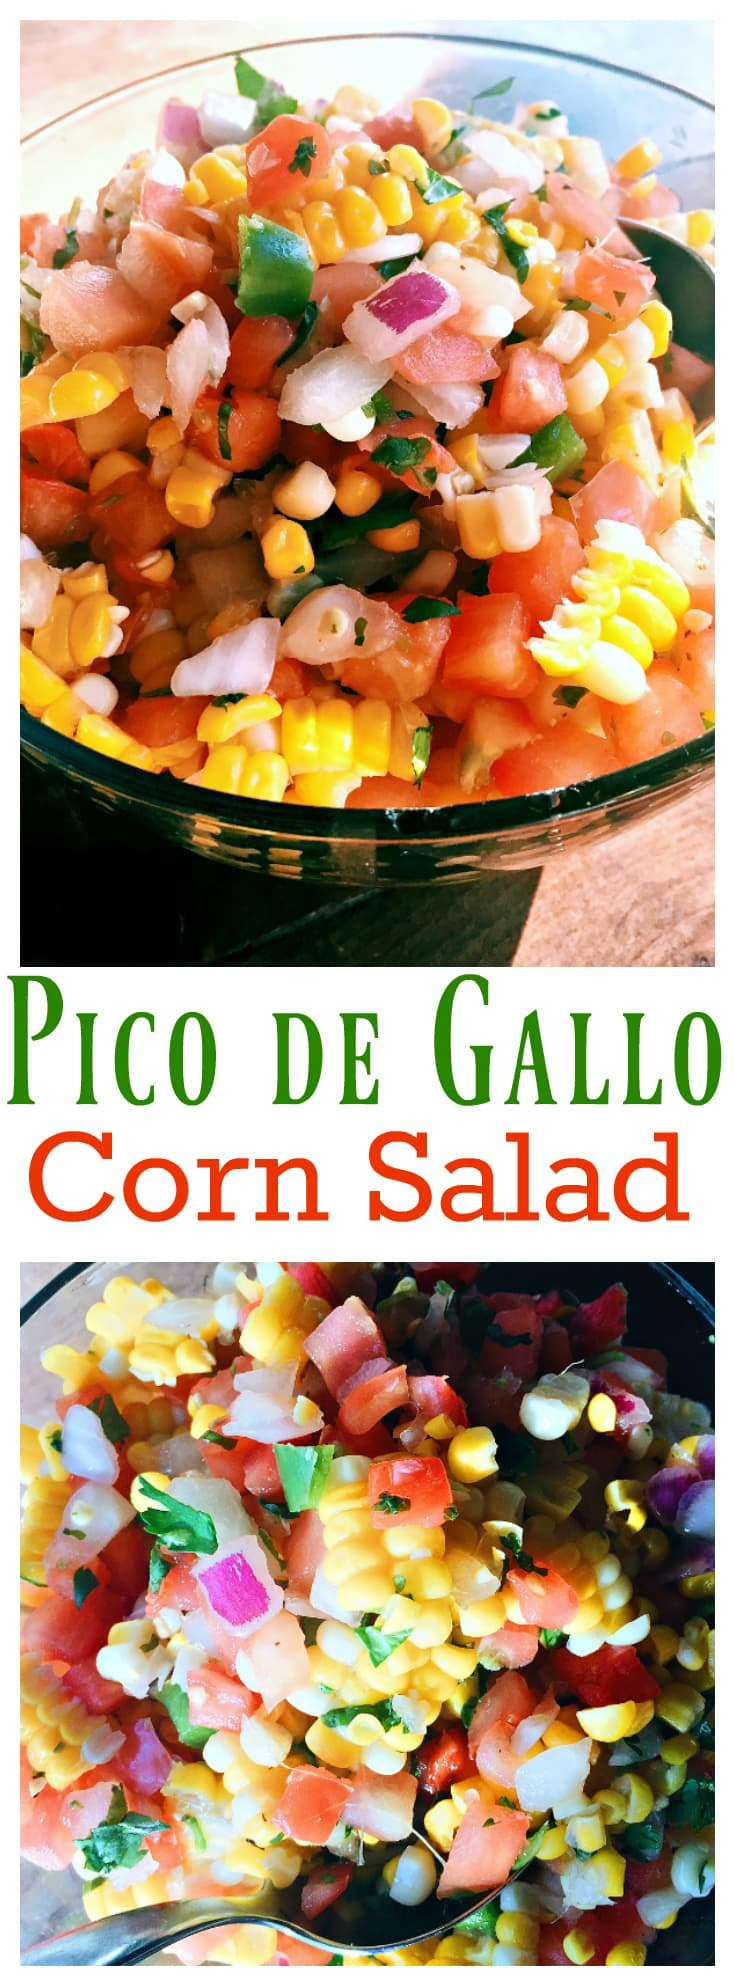 Easy Corn Pico de Gallo Salad